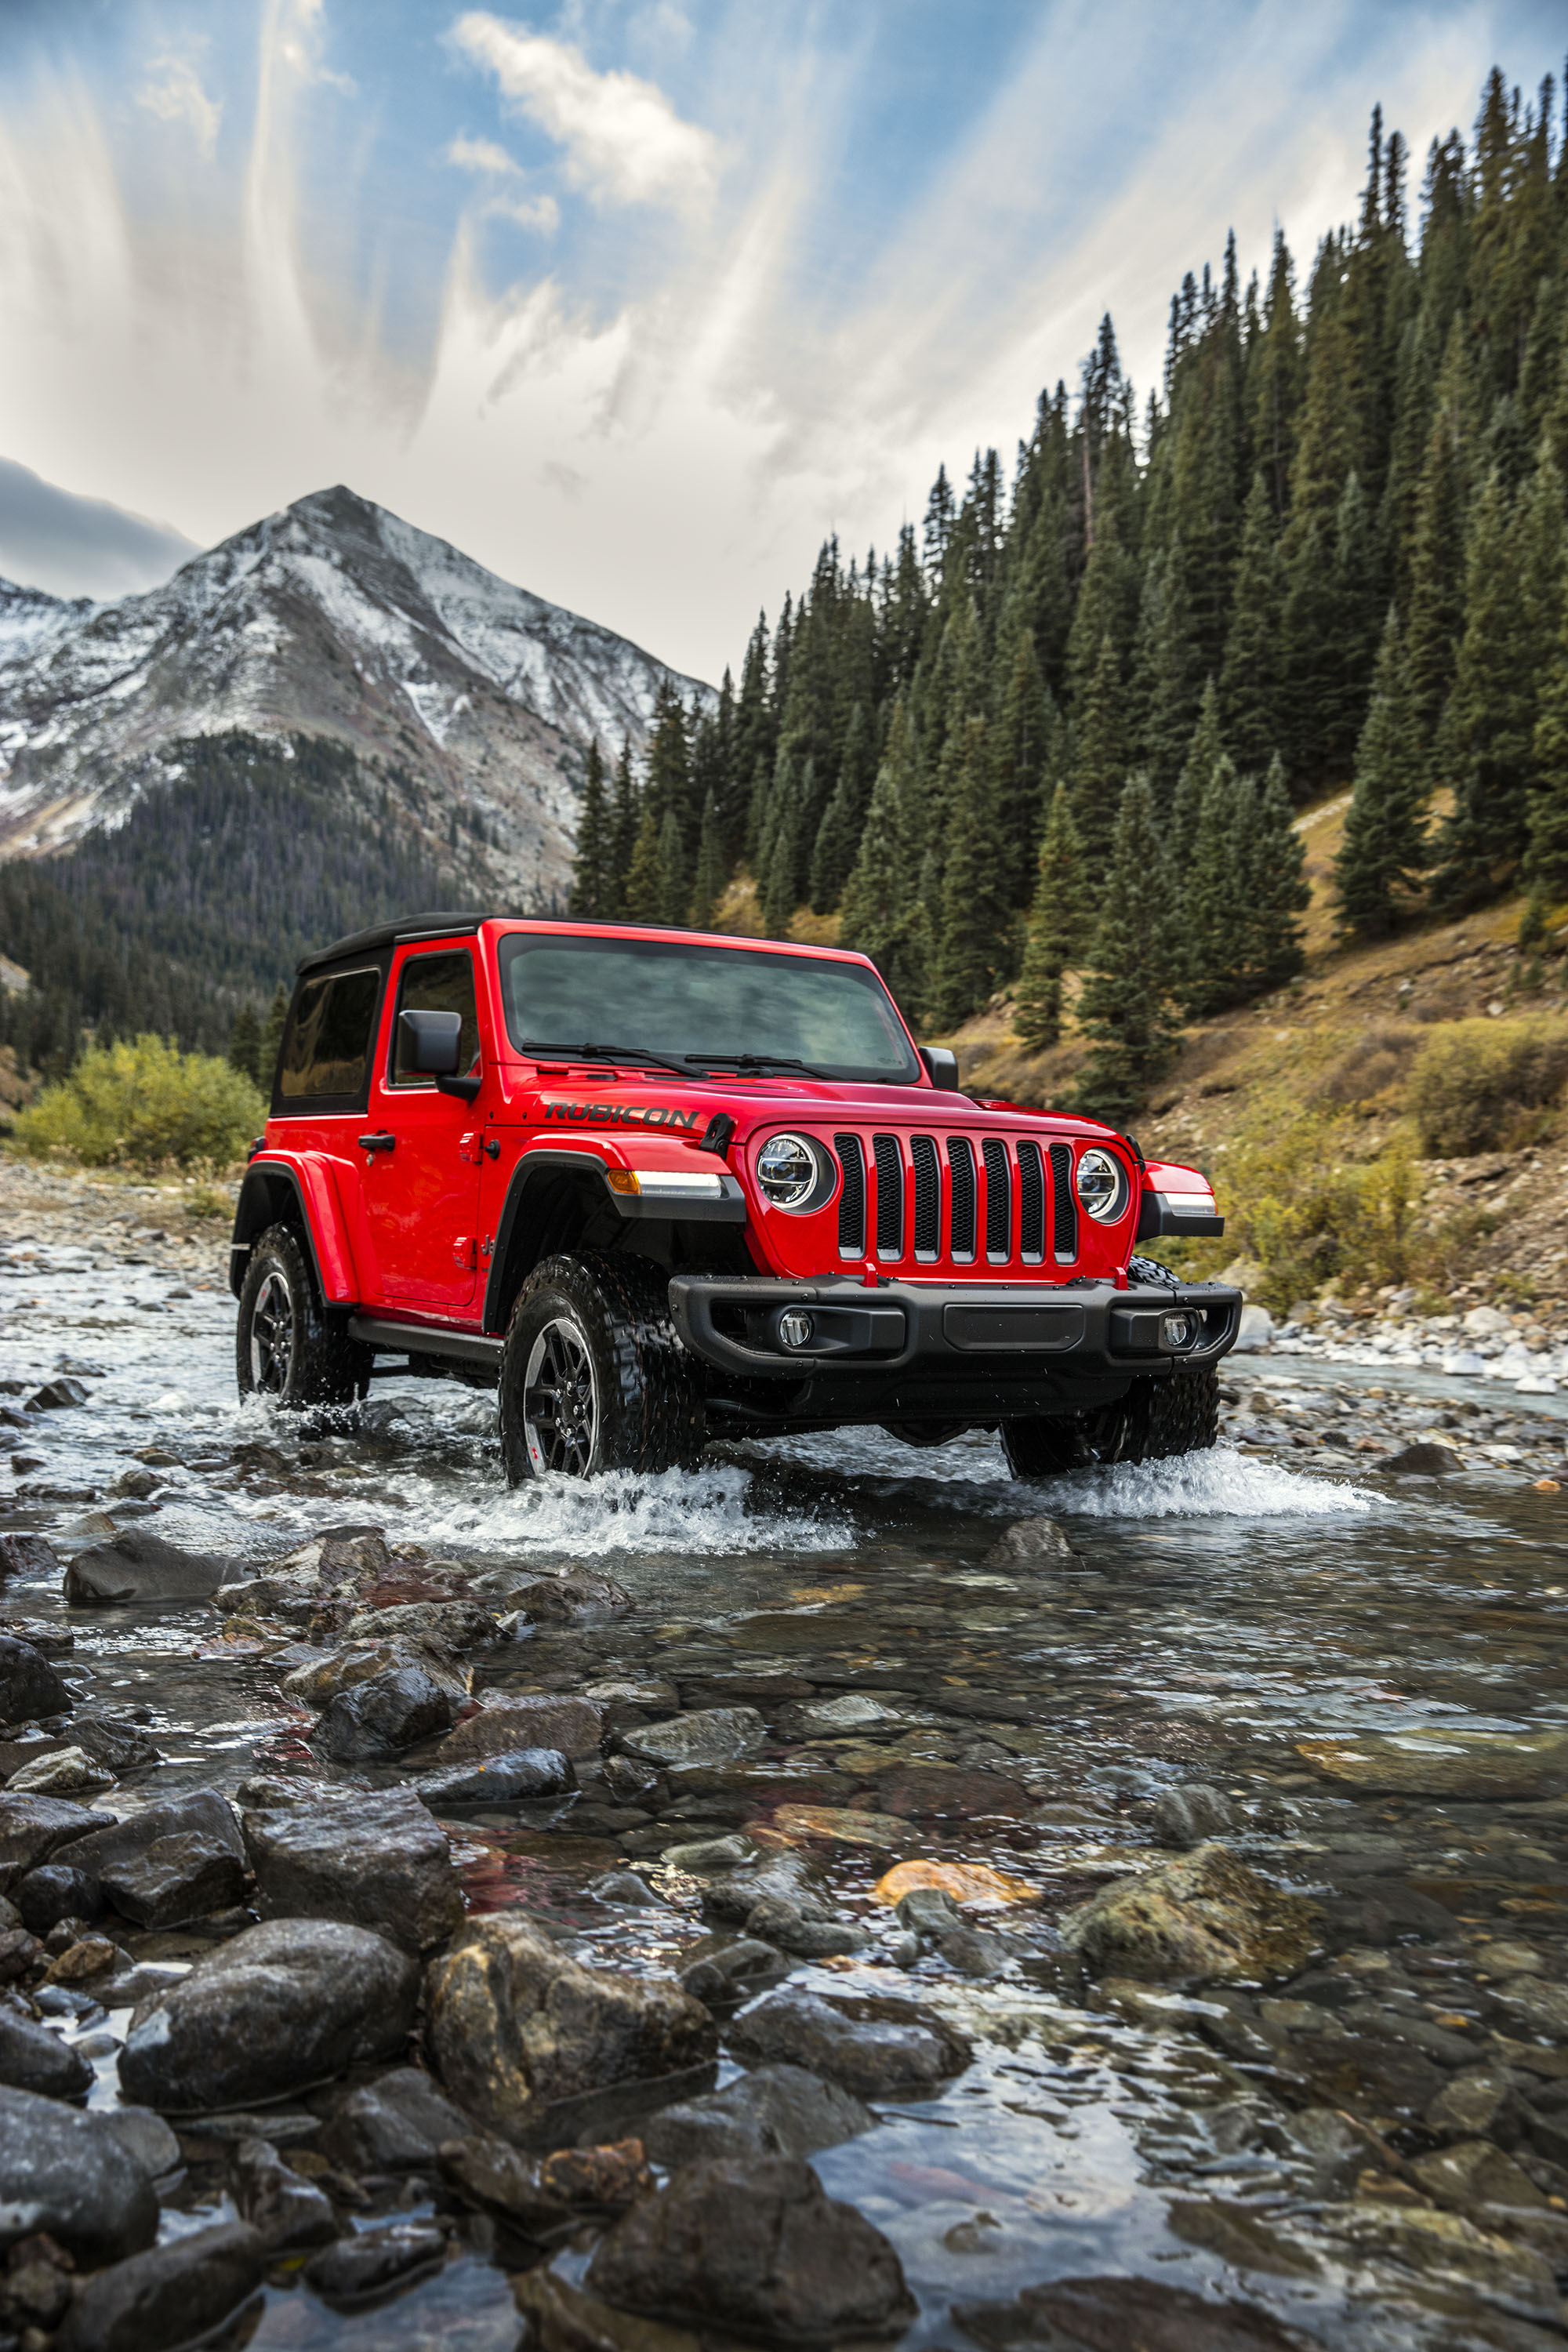 2010 jeep wrangler mountain edition owners manual